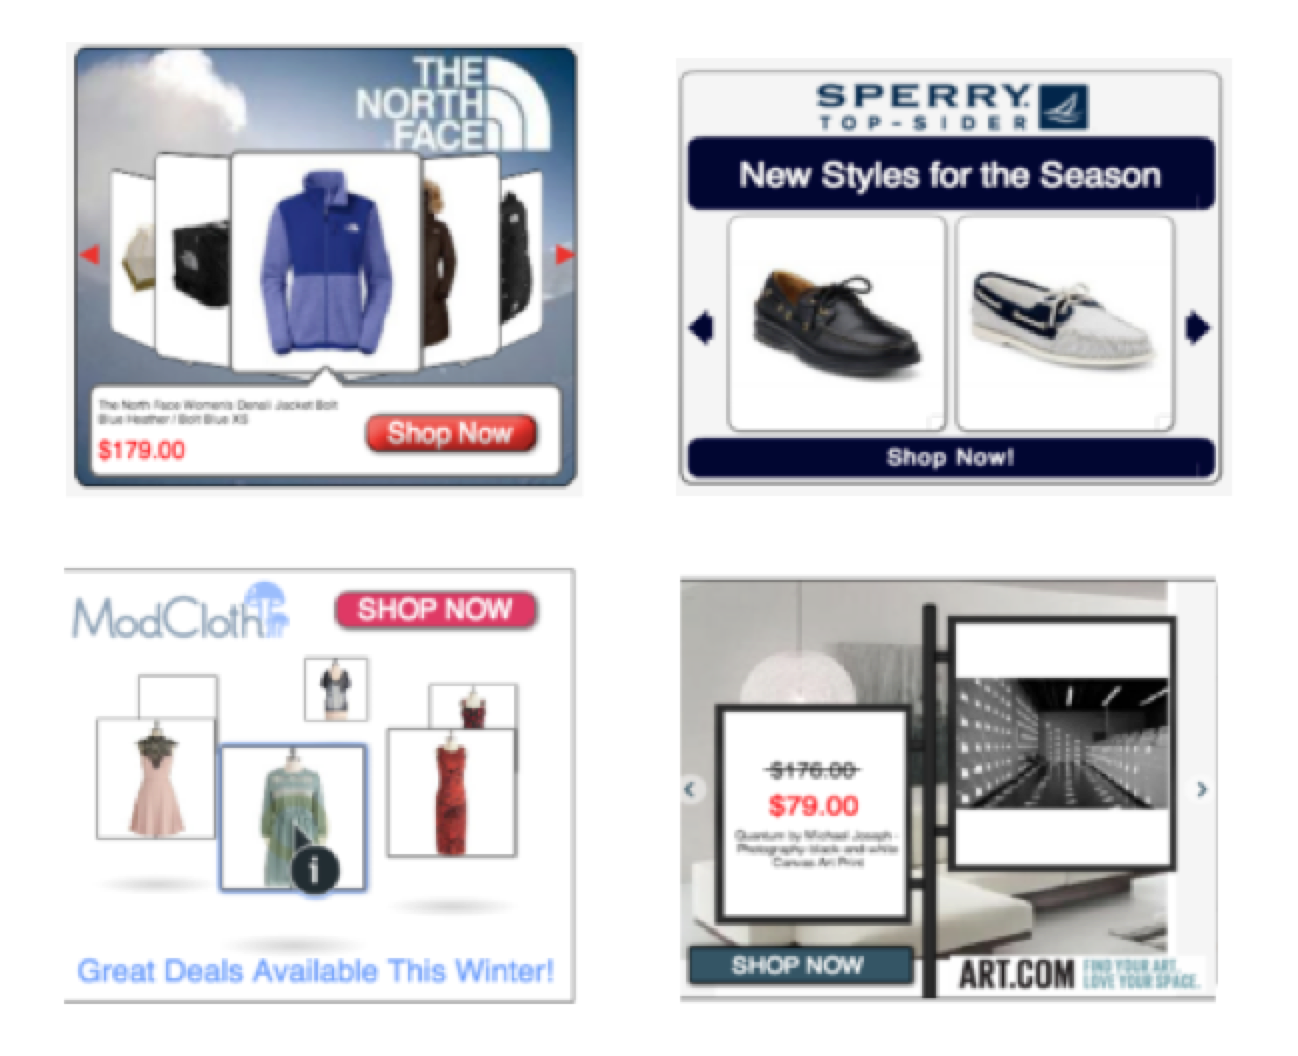 Use Dynamic Product Recommendations